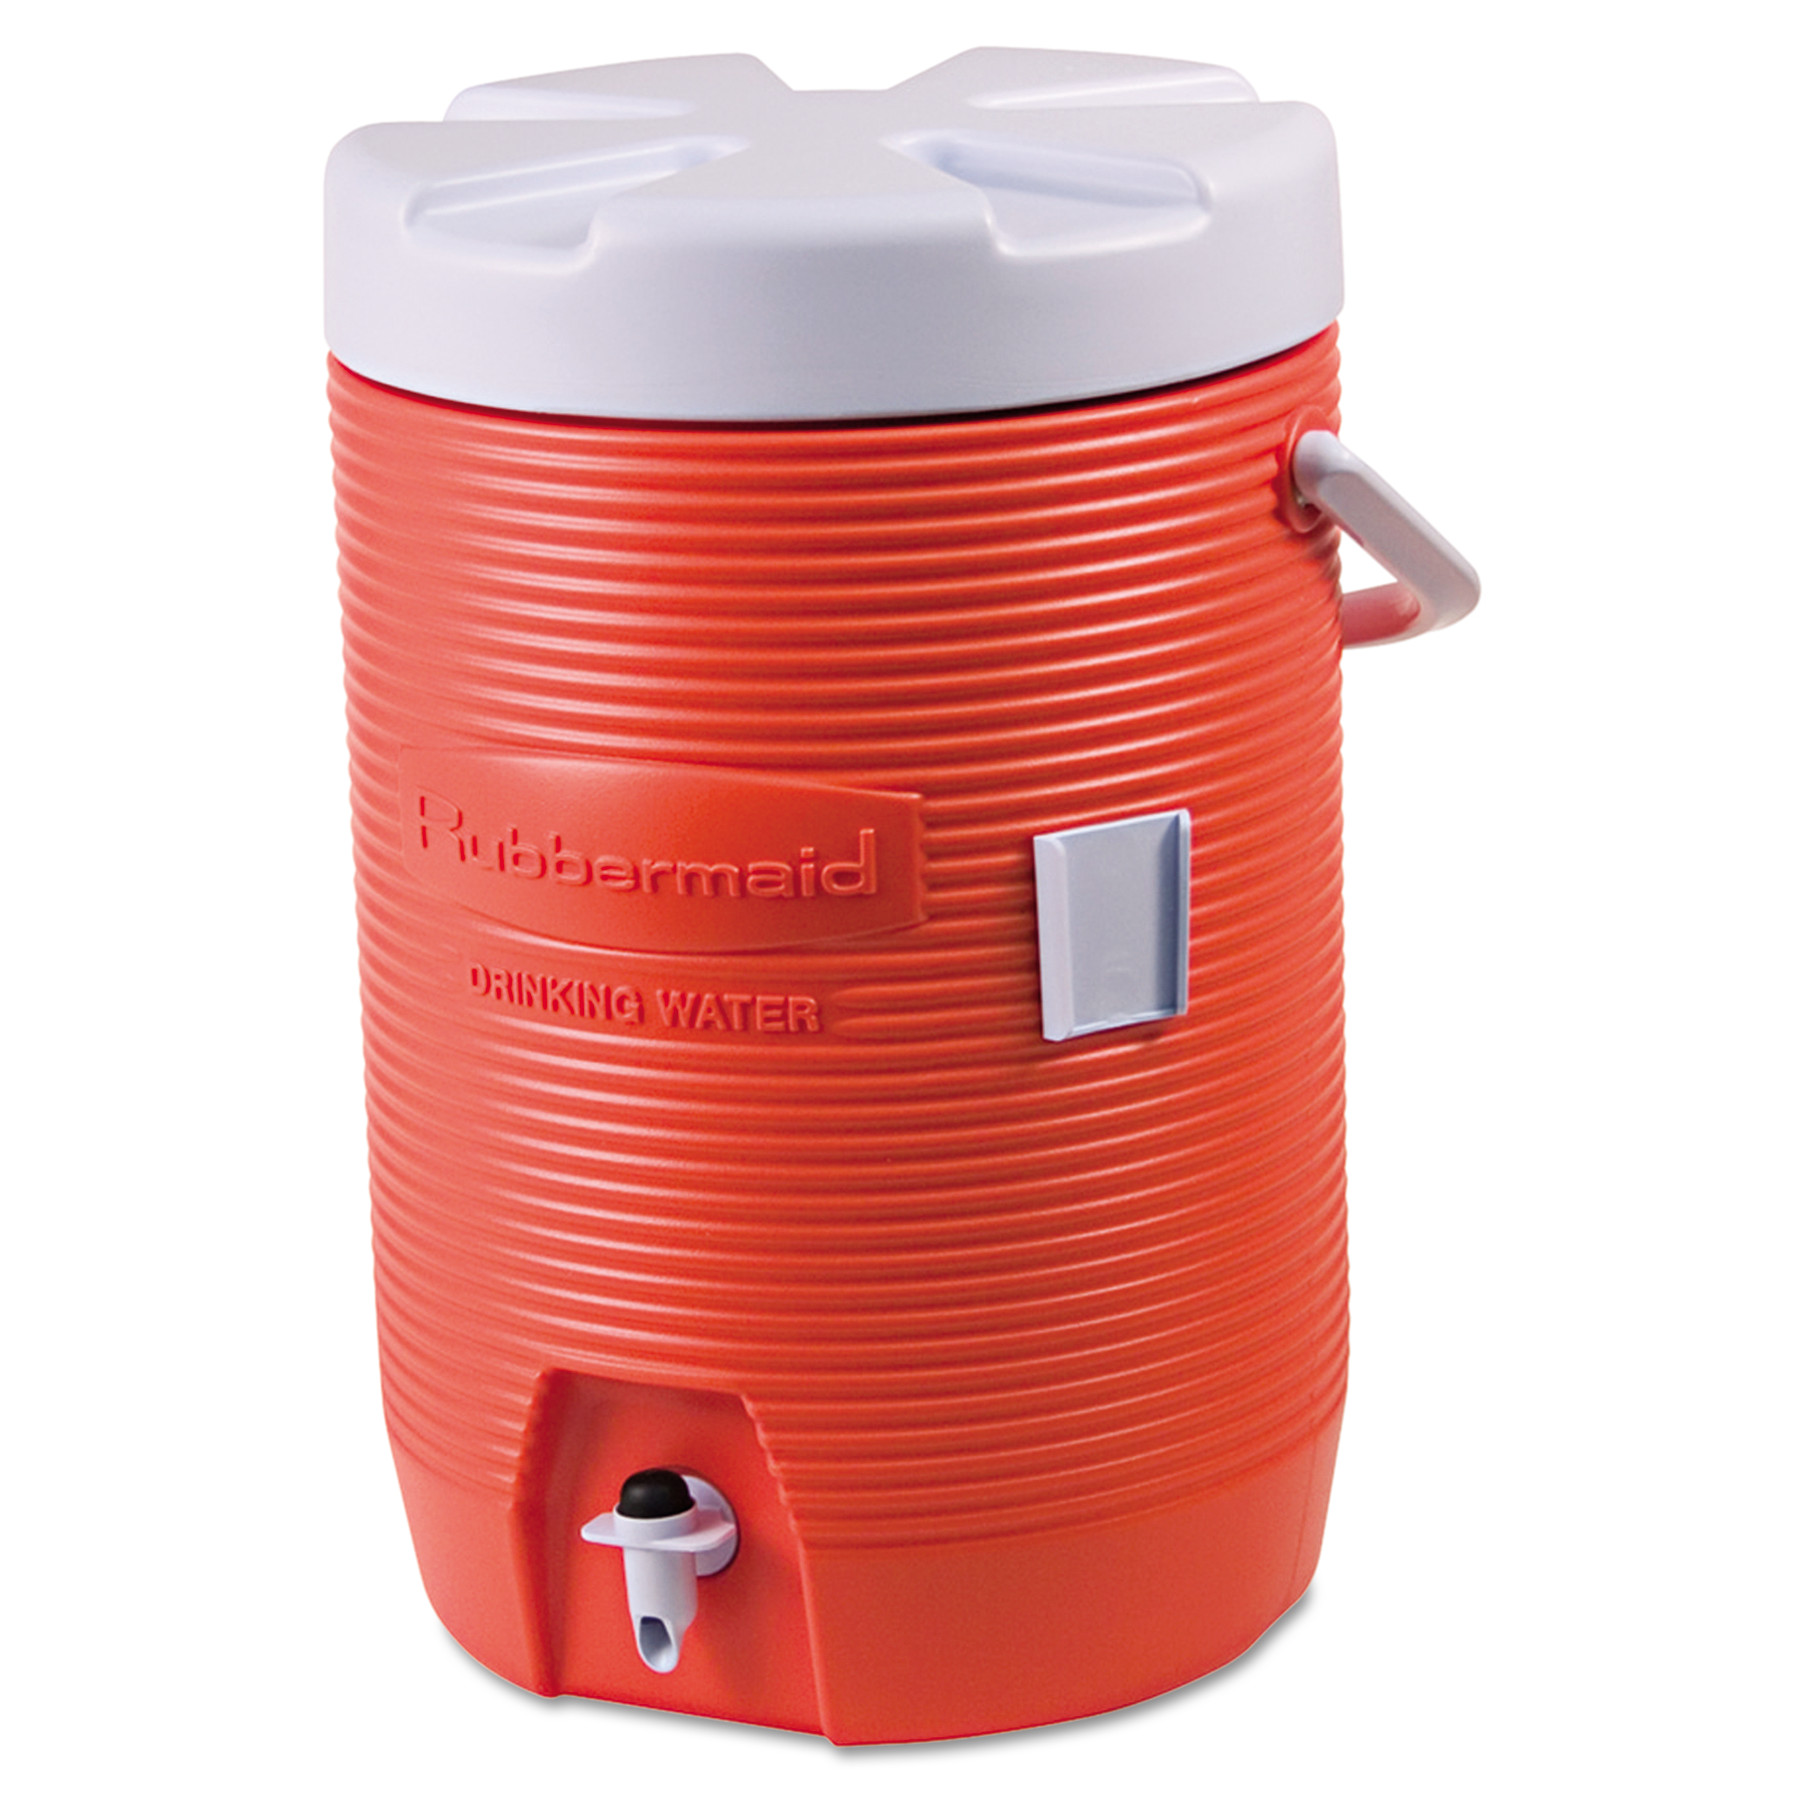 "Rubbermaid Commercial Insulated Beverage Container, 3gal, 11"" dia x 16 7/10h, Orange/White"